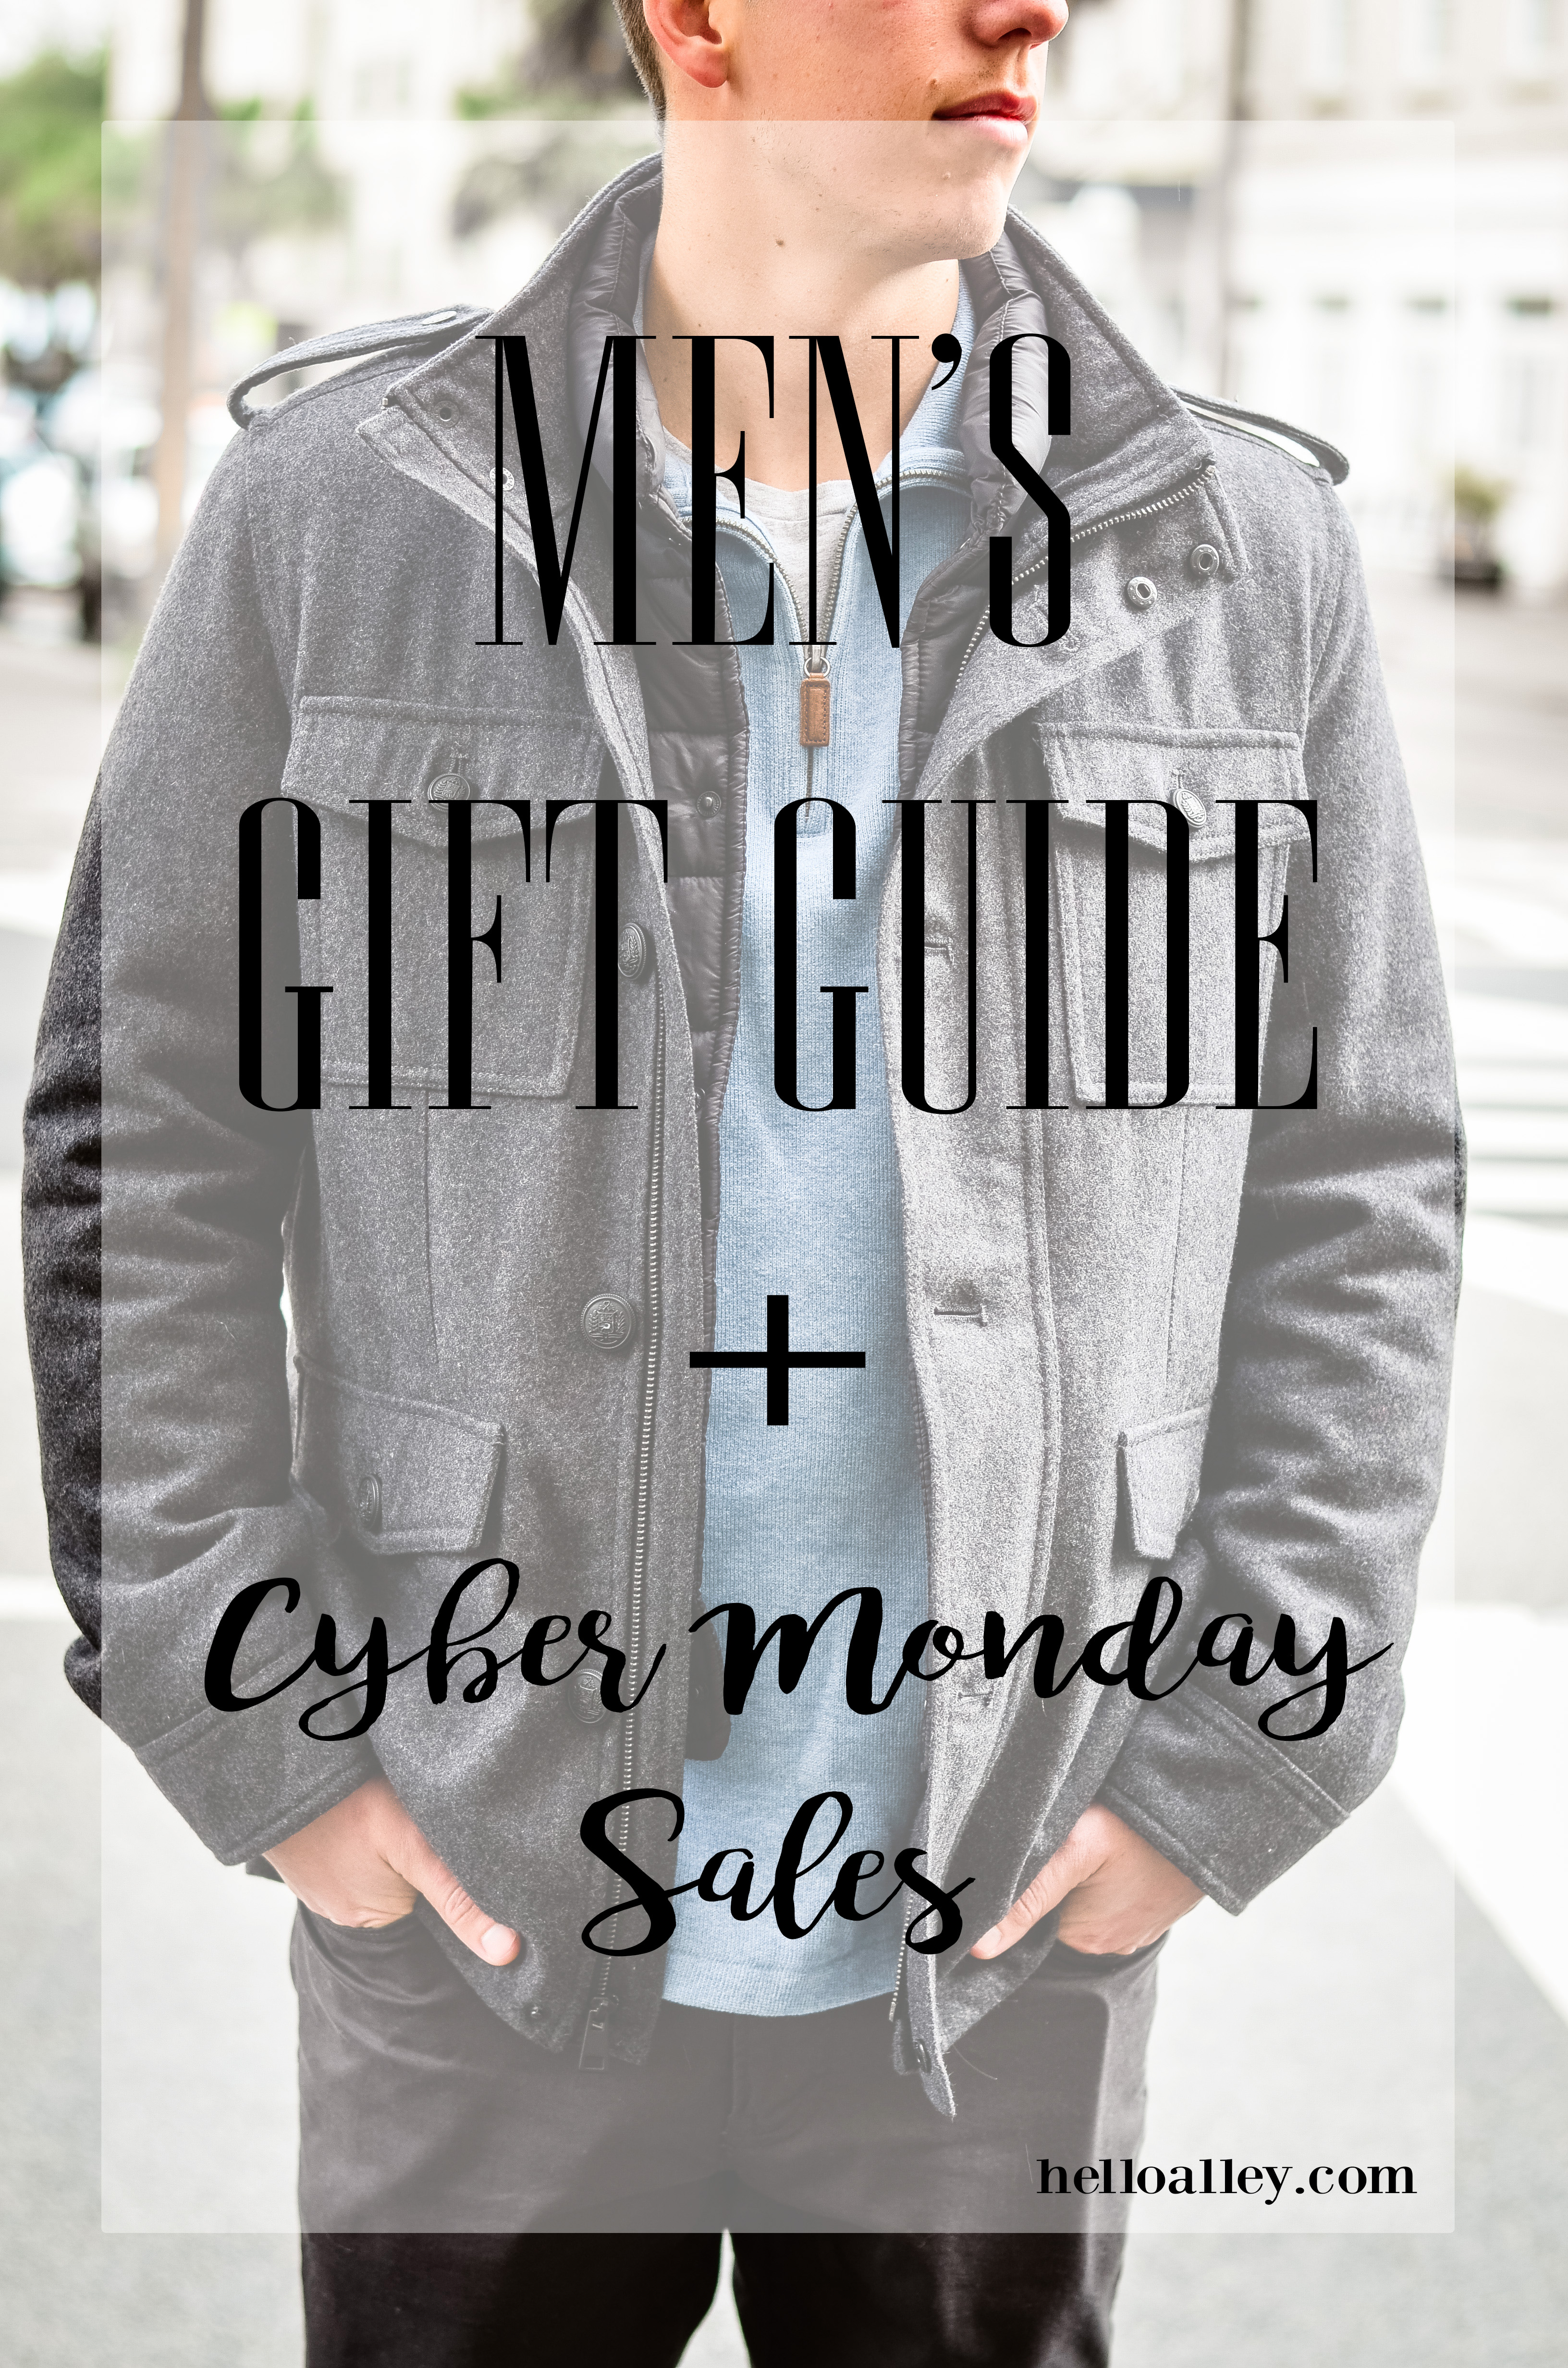 cyber-monday-mens-gift-guide-1-copy